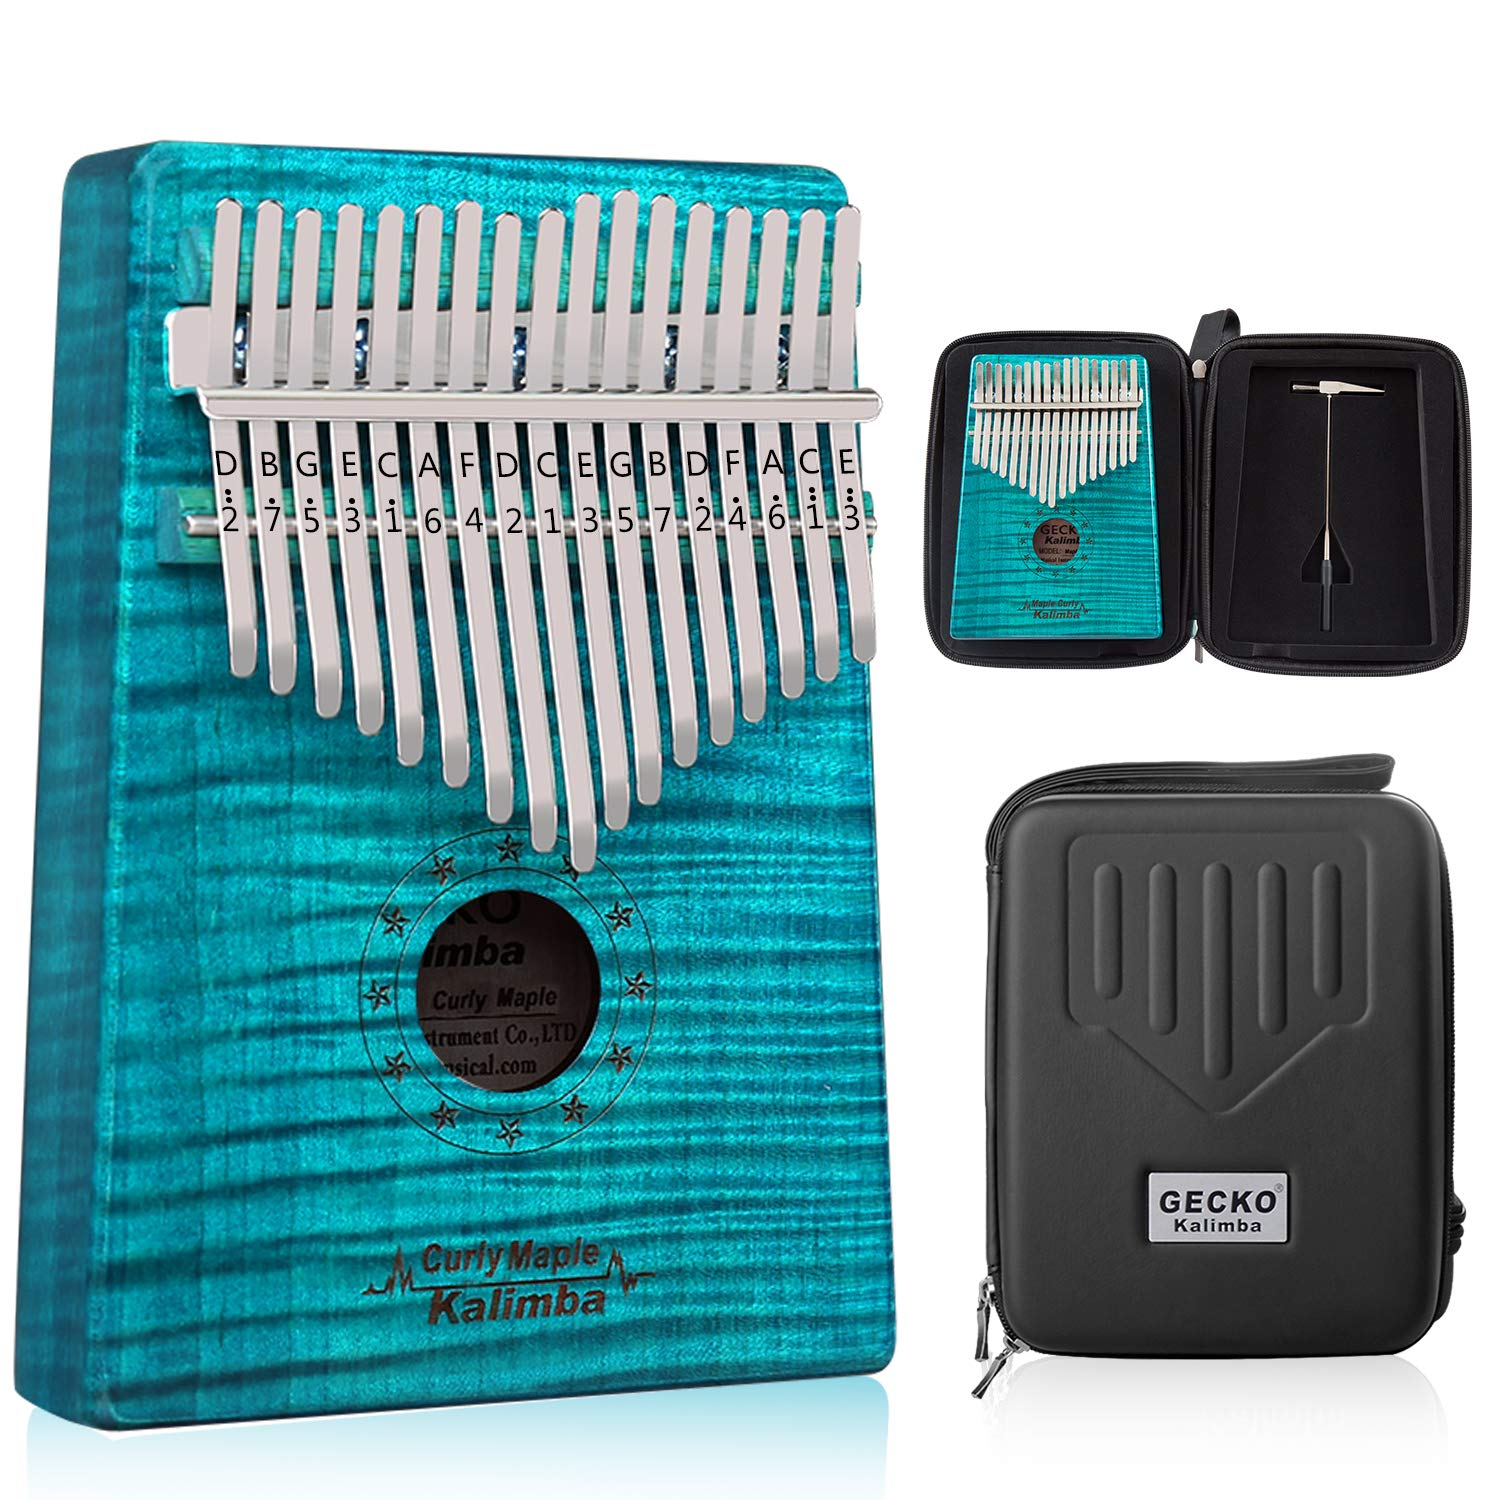 GECKO Kalimba 17 Key Thumb Piano with Hardshell Case Study Instruction Song Book Tuning Hammer for Beginners C Tone Tuned (Blue) by MYTTLELE (Image #1)